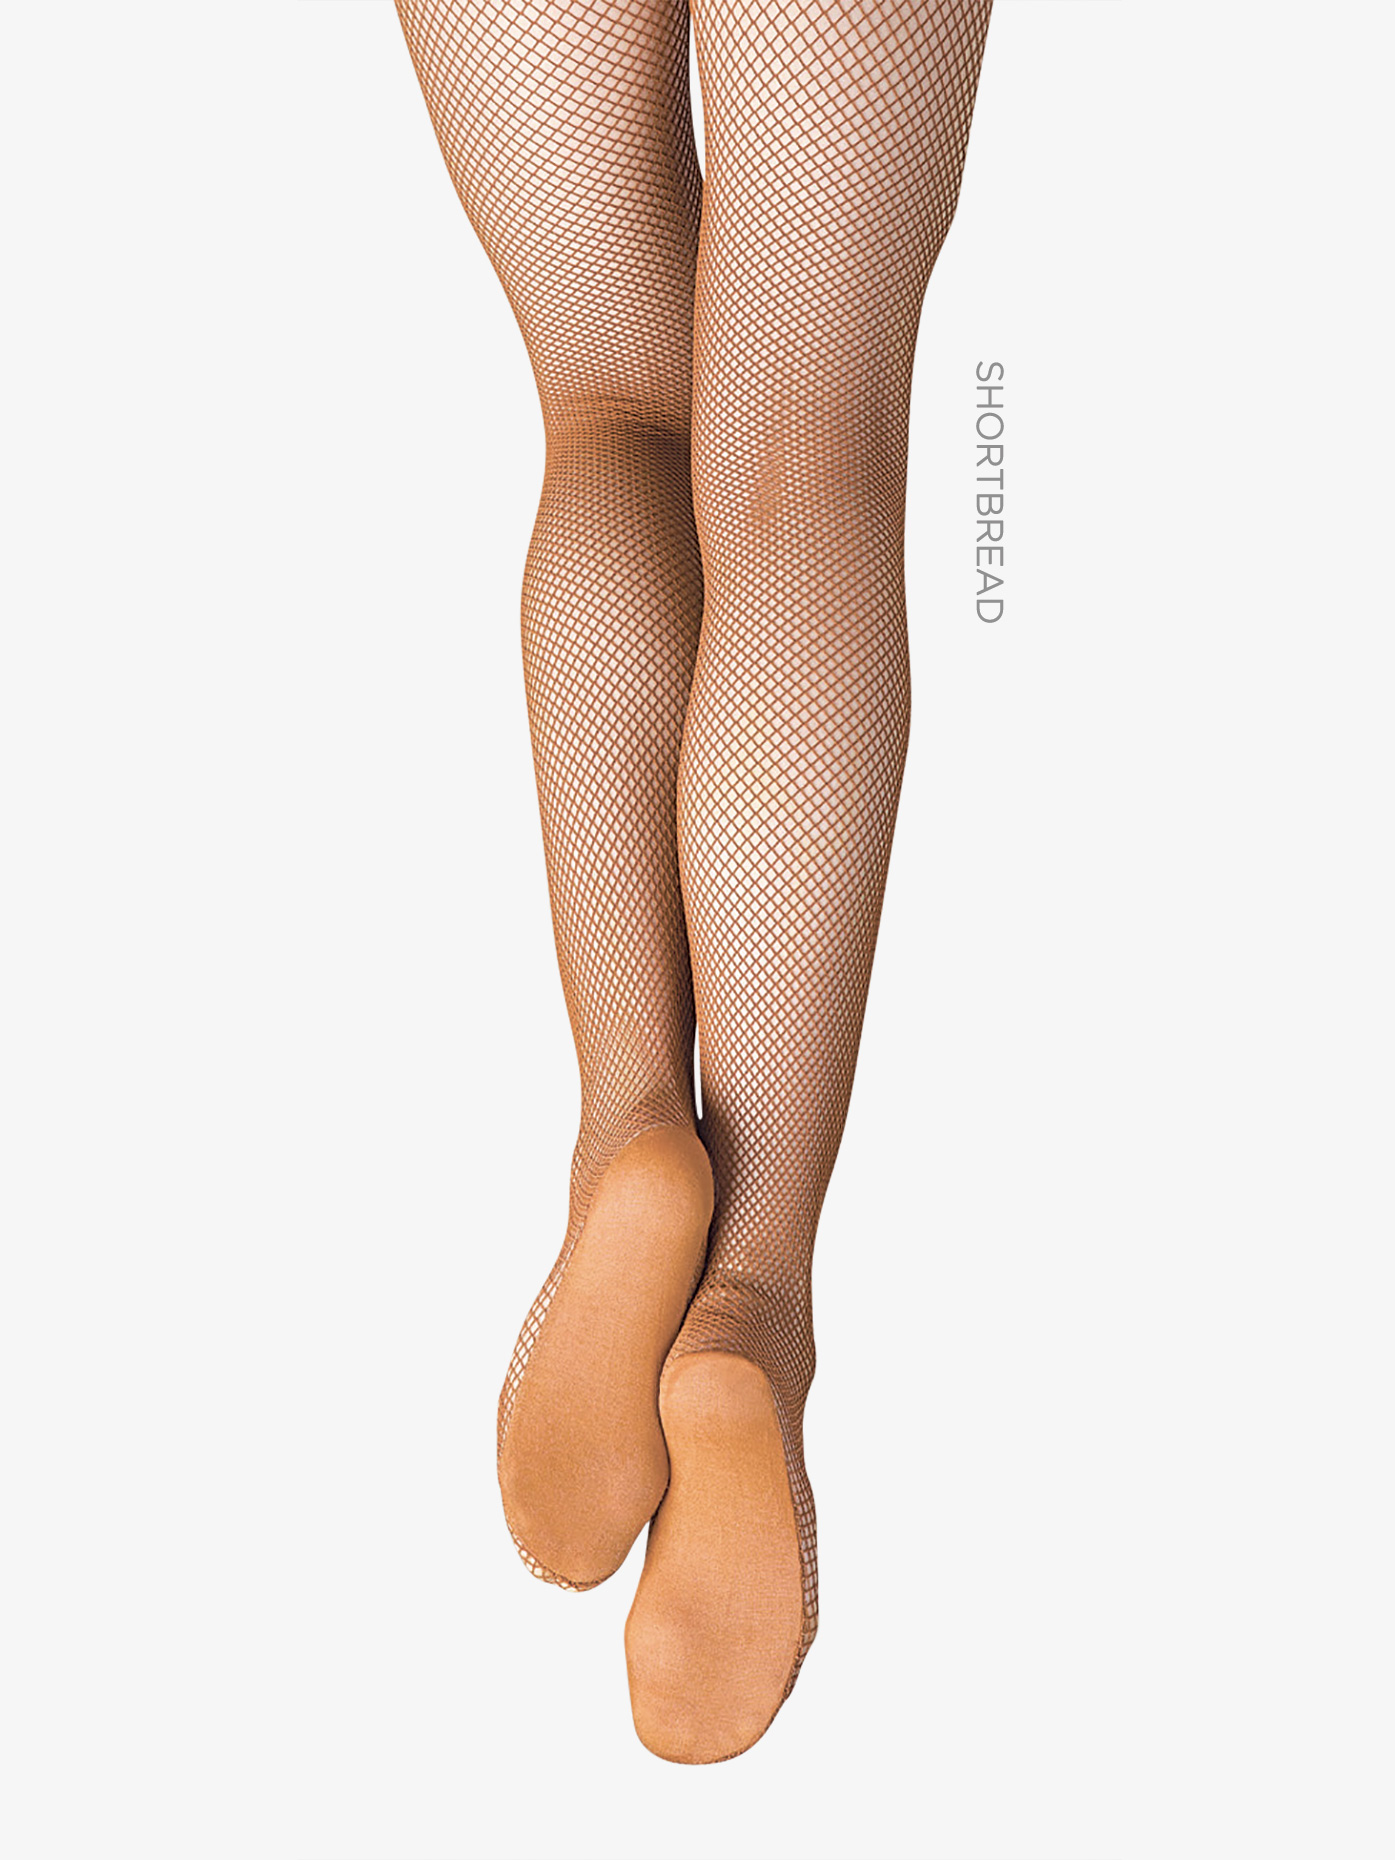 7ec28af7a6ff1 Professional Seamless Fishnet Tights - Fishnet Tights | Capezio 3000 |  DiscountDance.com